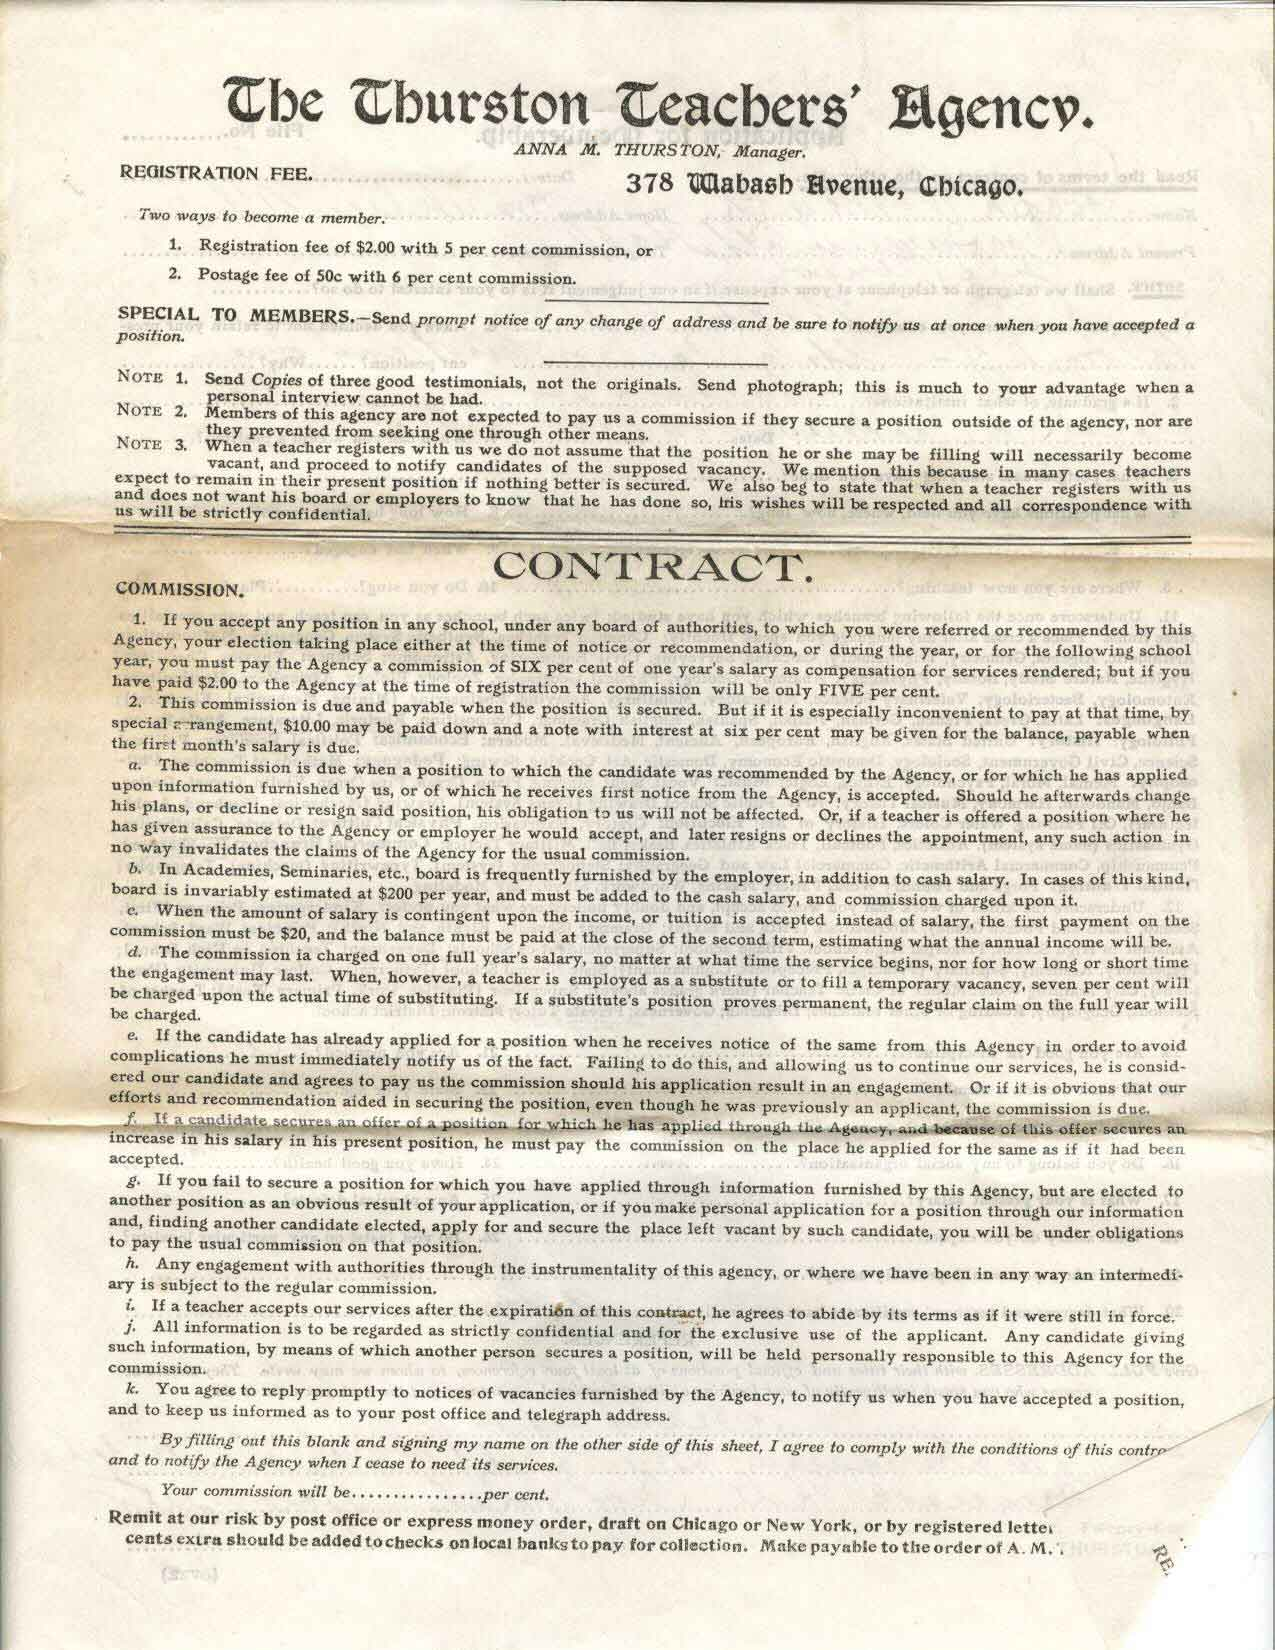 front of document